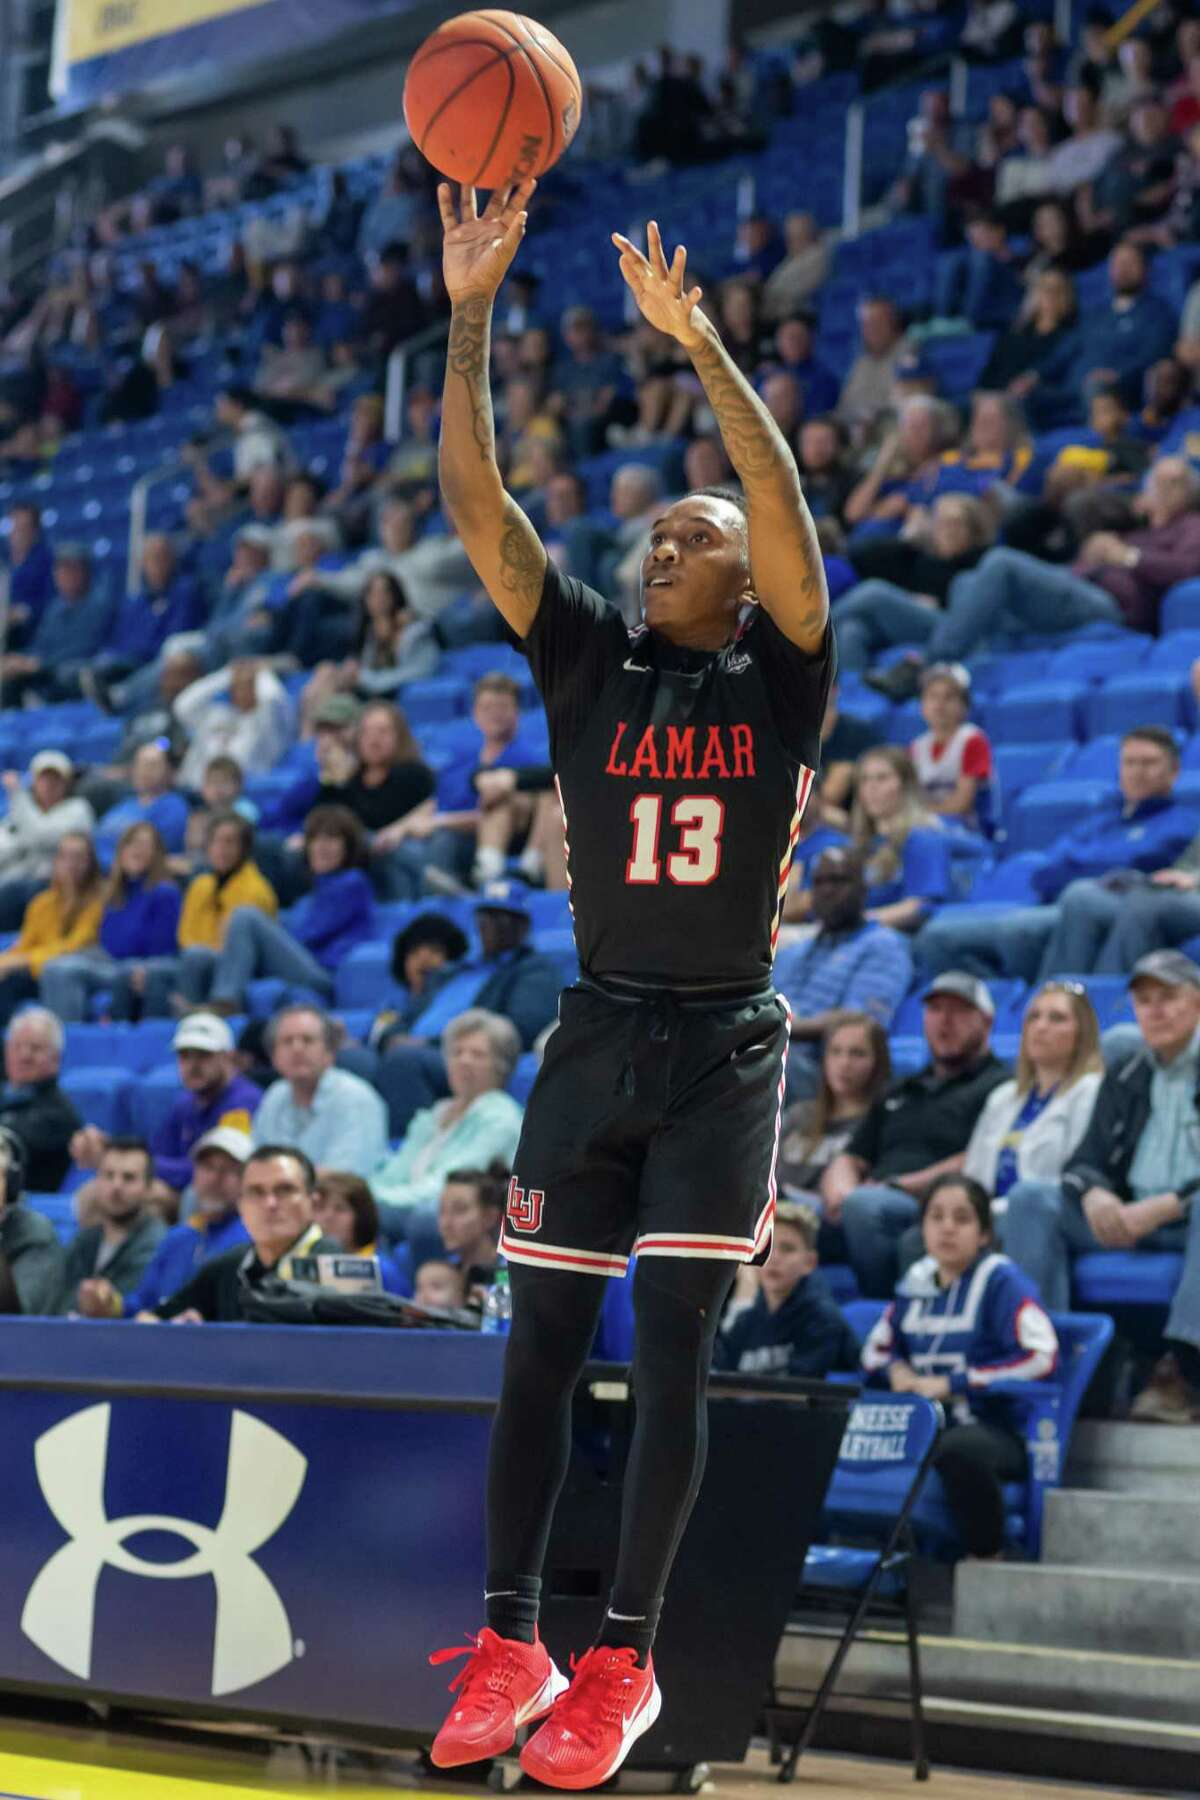 Davion Buster (13) puts up a three-pointer for three of his 39 points in the game as the Lamar Cardinals headed to Lake Charles to take on the McNeese Cowboys on February 1, 2020. Fran Ruchalski/The Enterprise